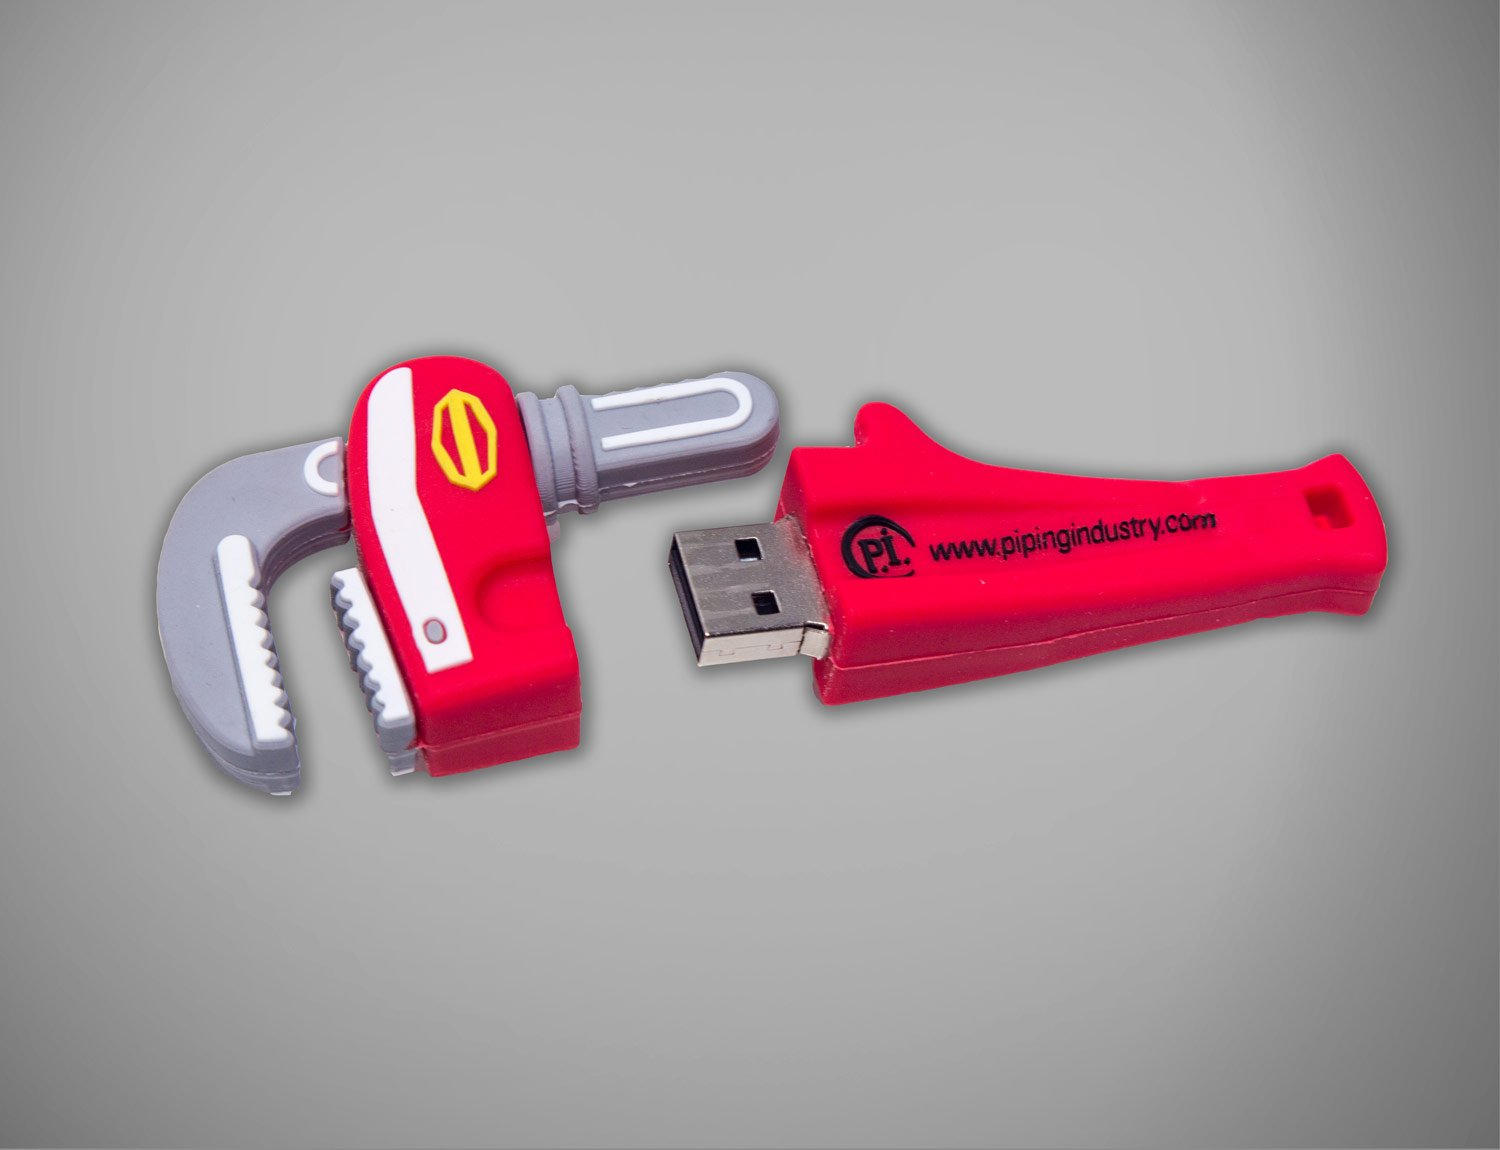 Union Merchandise - BMA Media Group - LaborTools